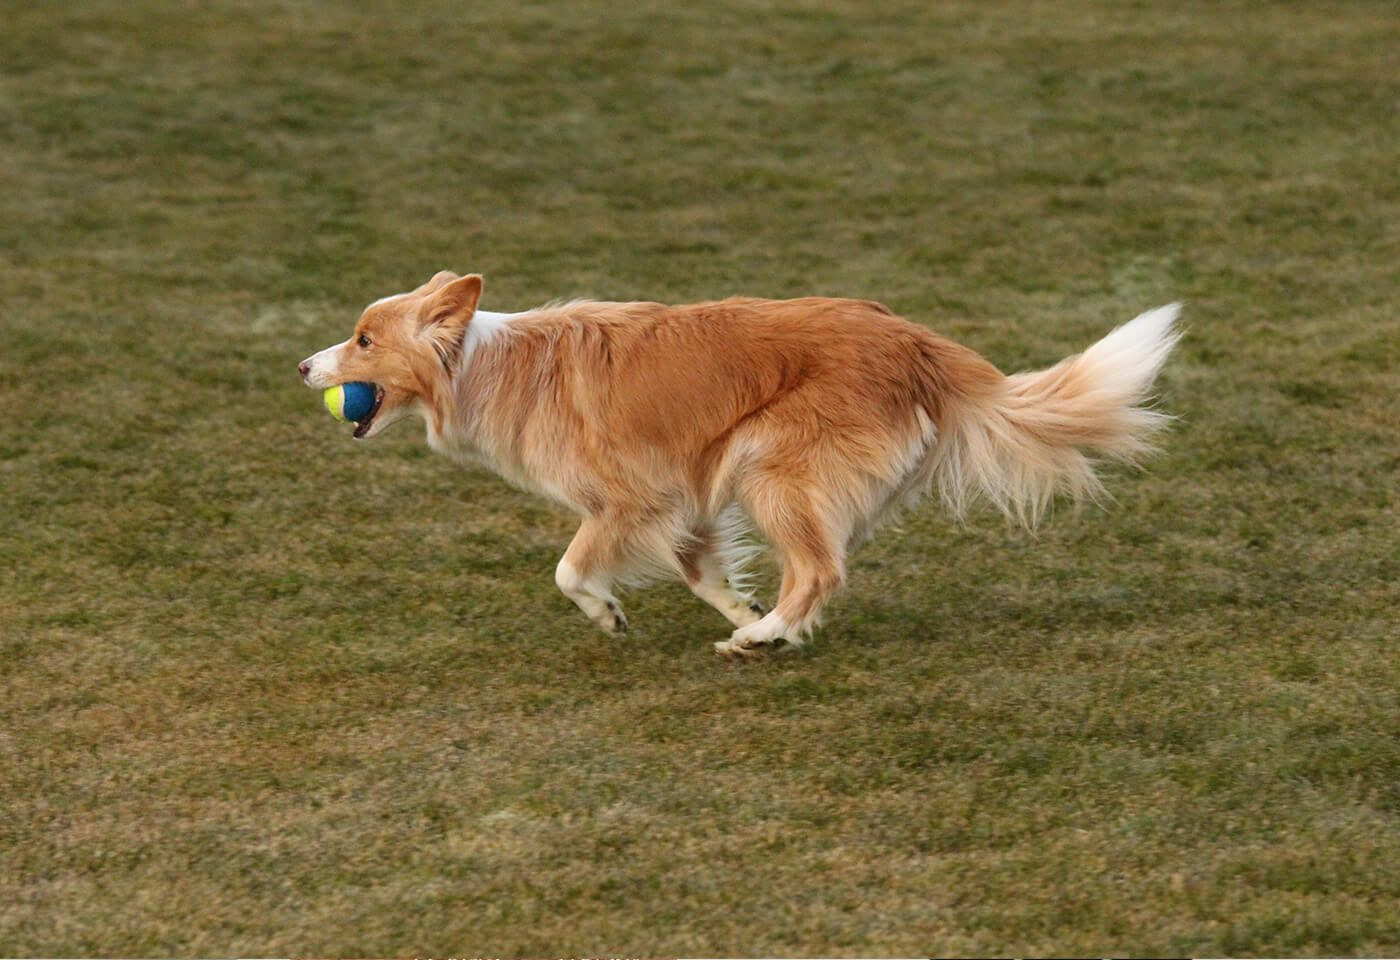 Dog With Ball In Mouth Taken With Canon Eos 700d Dslr Camera Best